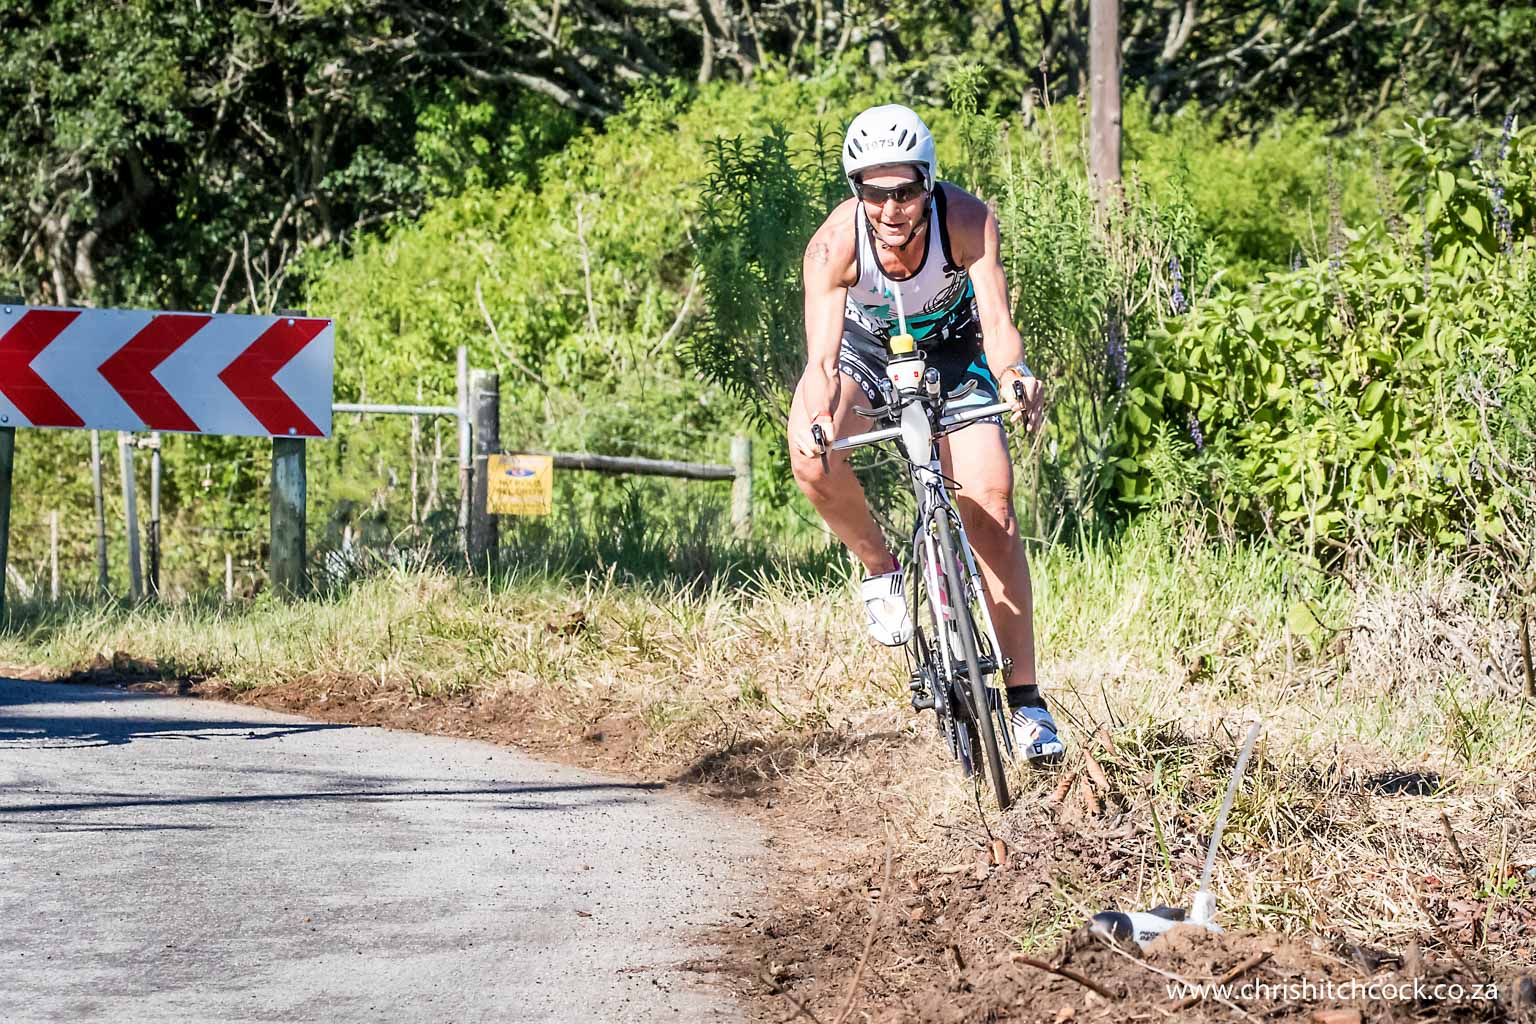 The route is challenging, and occasionally very tricky. Johannesburg based athlete Desiree Dickinson may have got this corner wrong, but she survived, and what remains in my mind is that she laughed all the way through the incident.